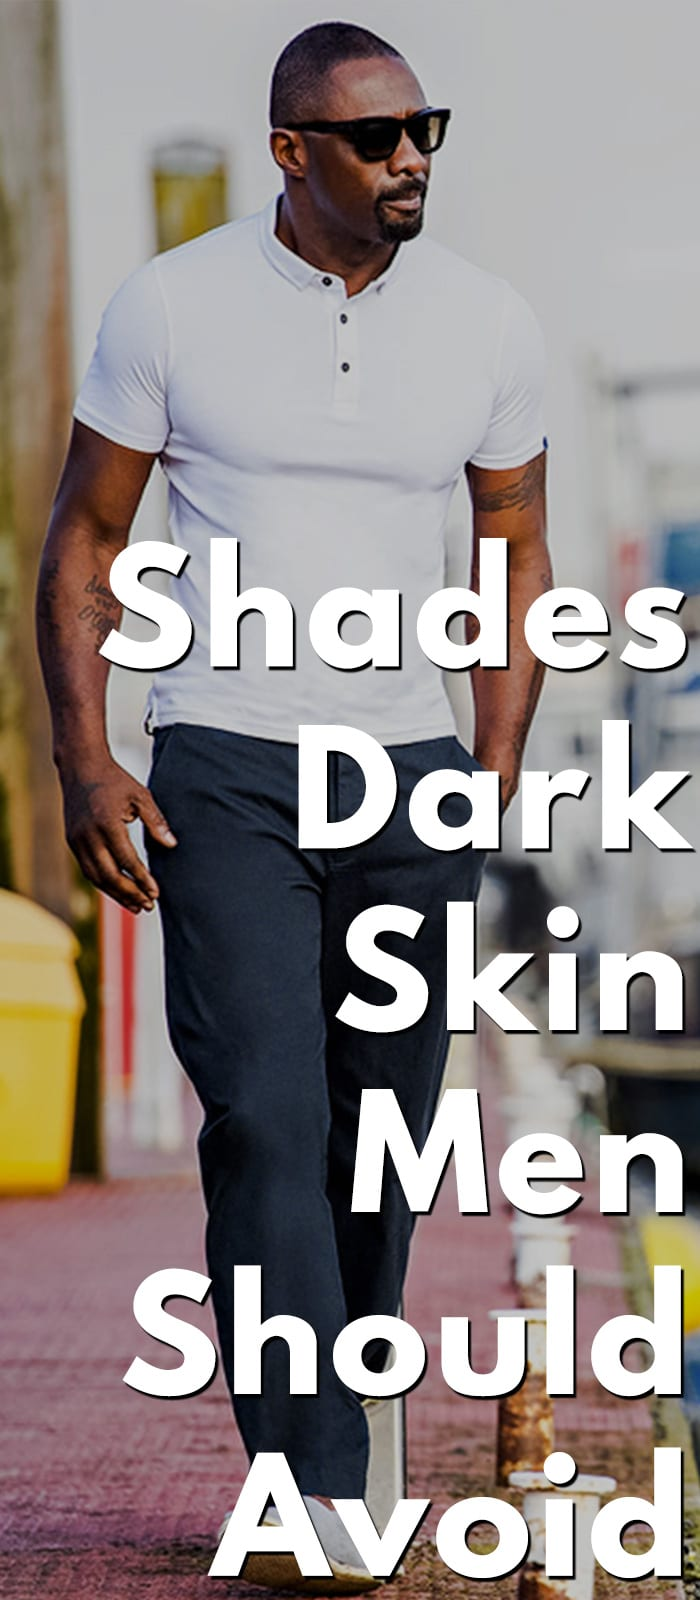 Shades Dark Skin Men Should Avoid